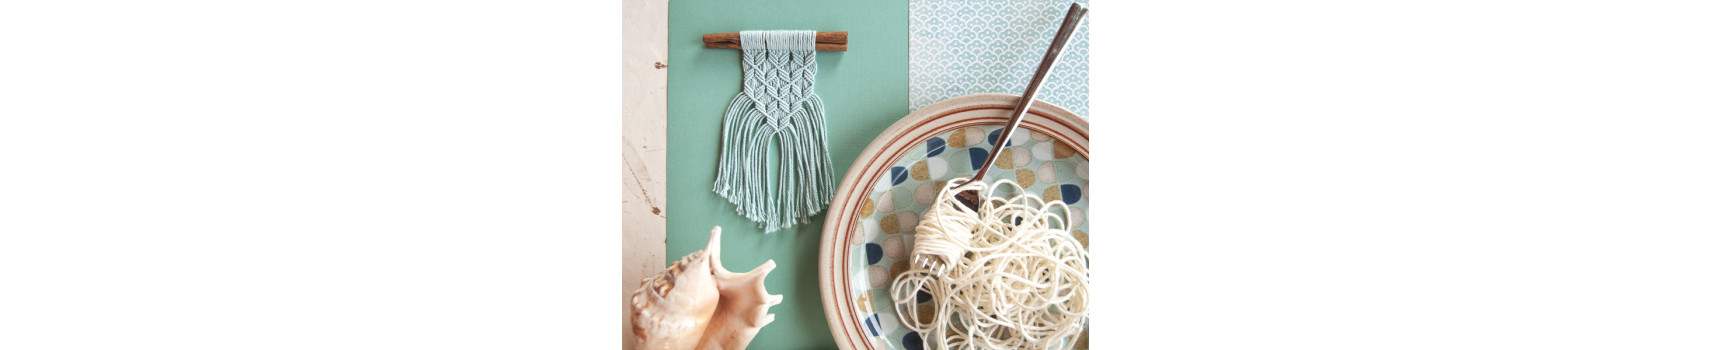 Discover the Spring/Summer yarns in the Lane Mondial collection!